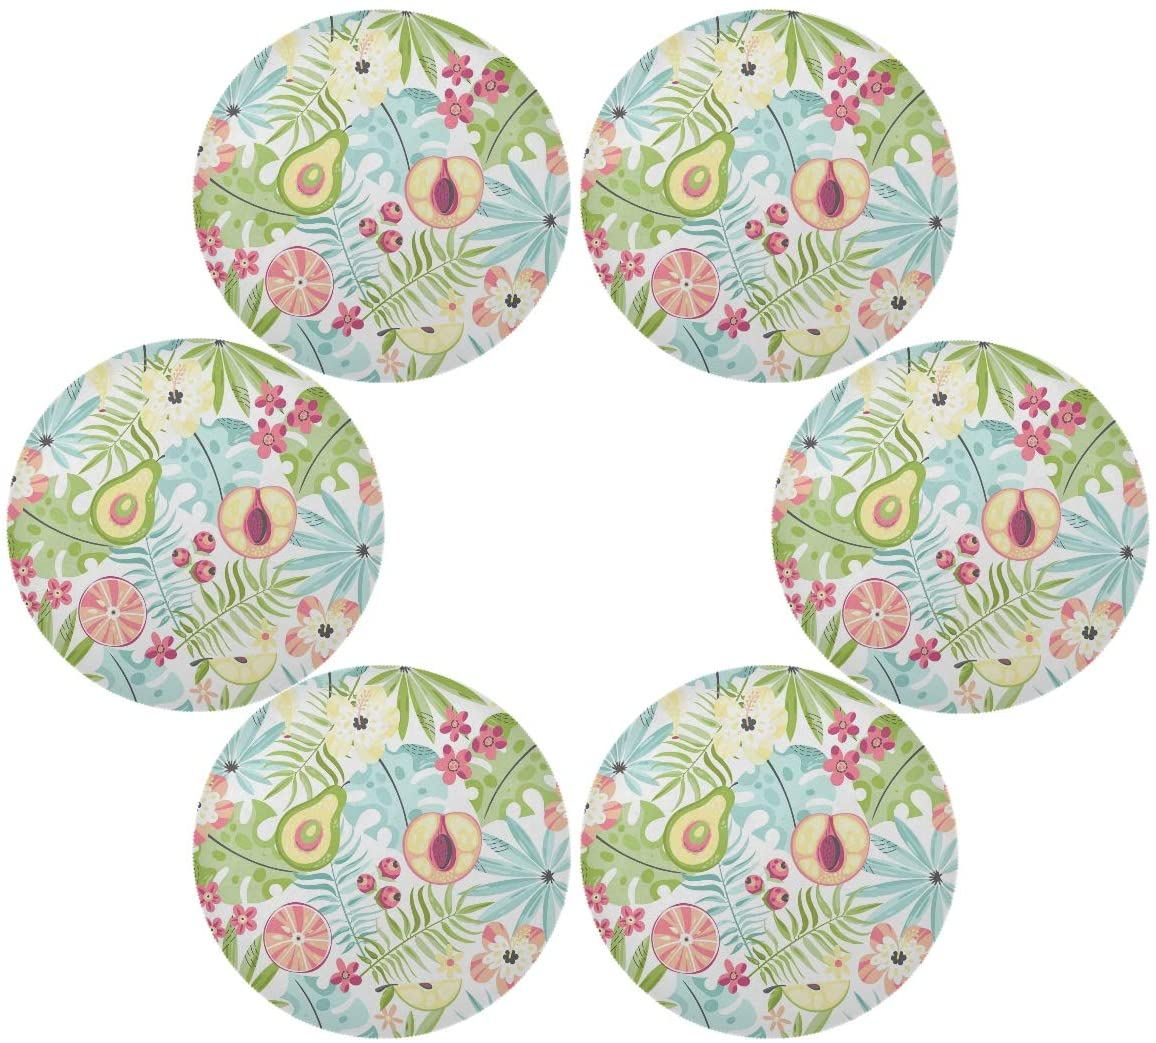 senya Fruit Collection Round Place mats for Kitchen Dining Table Runner Heat Insulation Non-Slip Washable Fall Placemats Set of 6